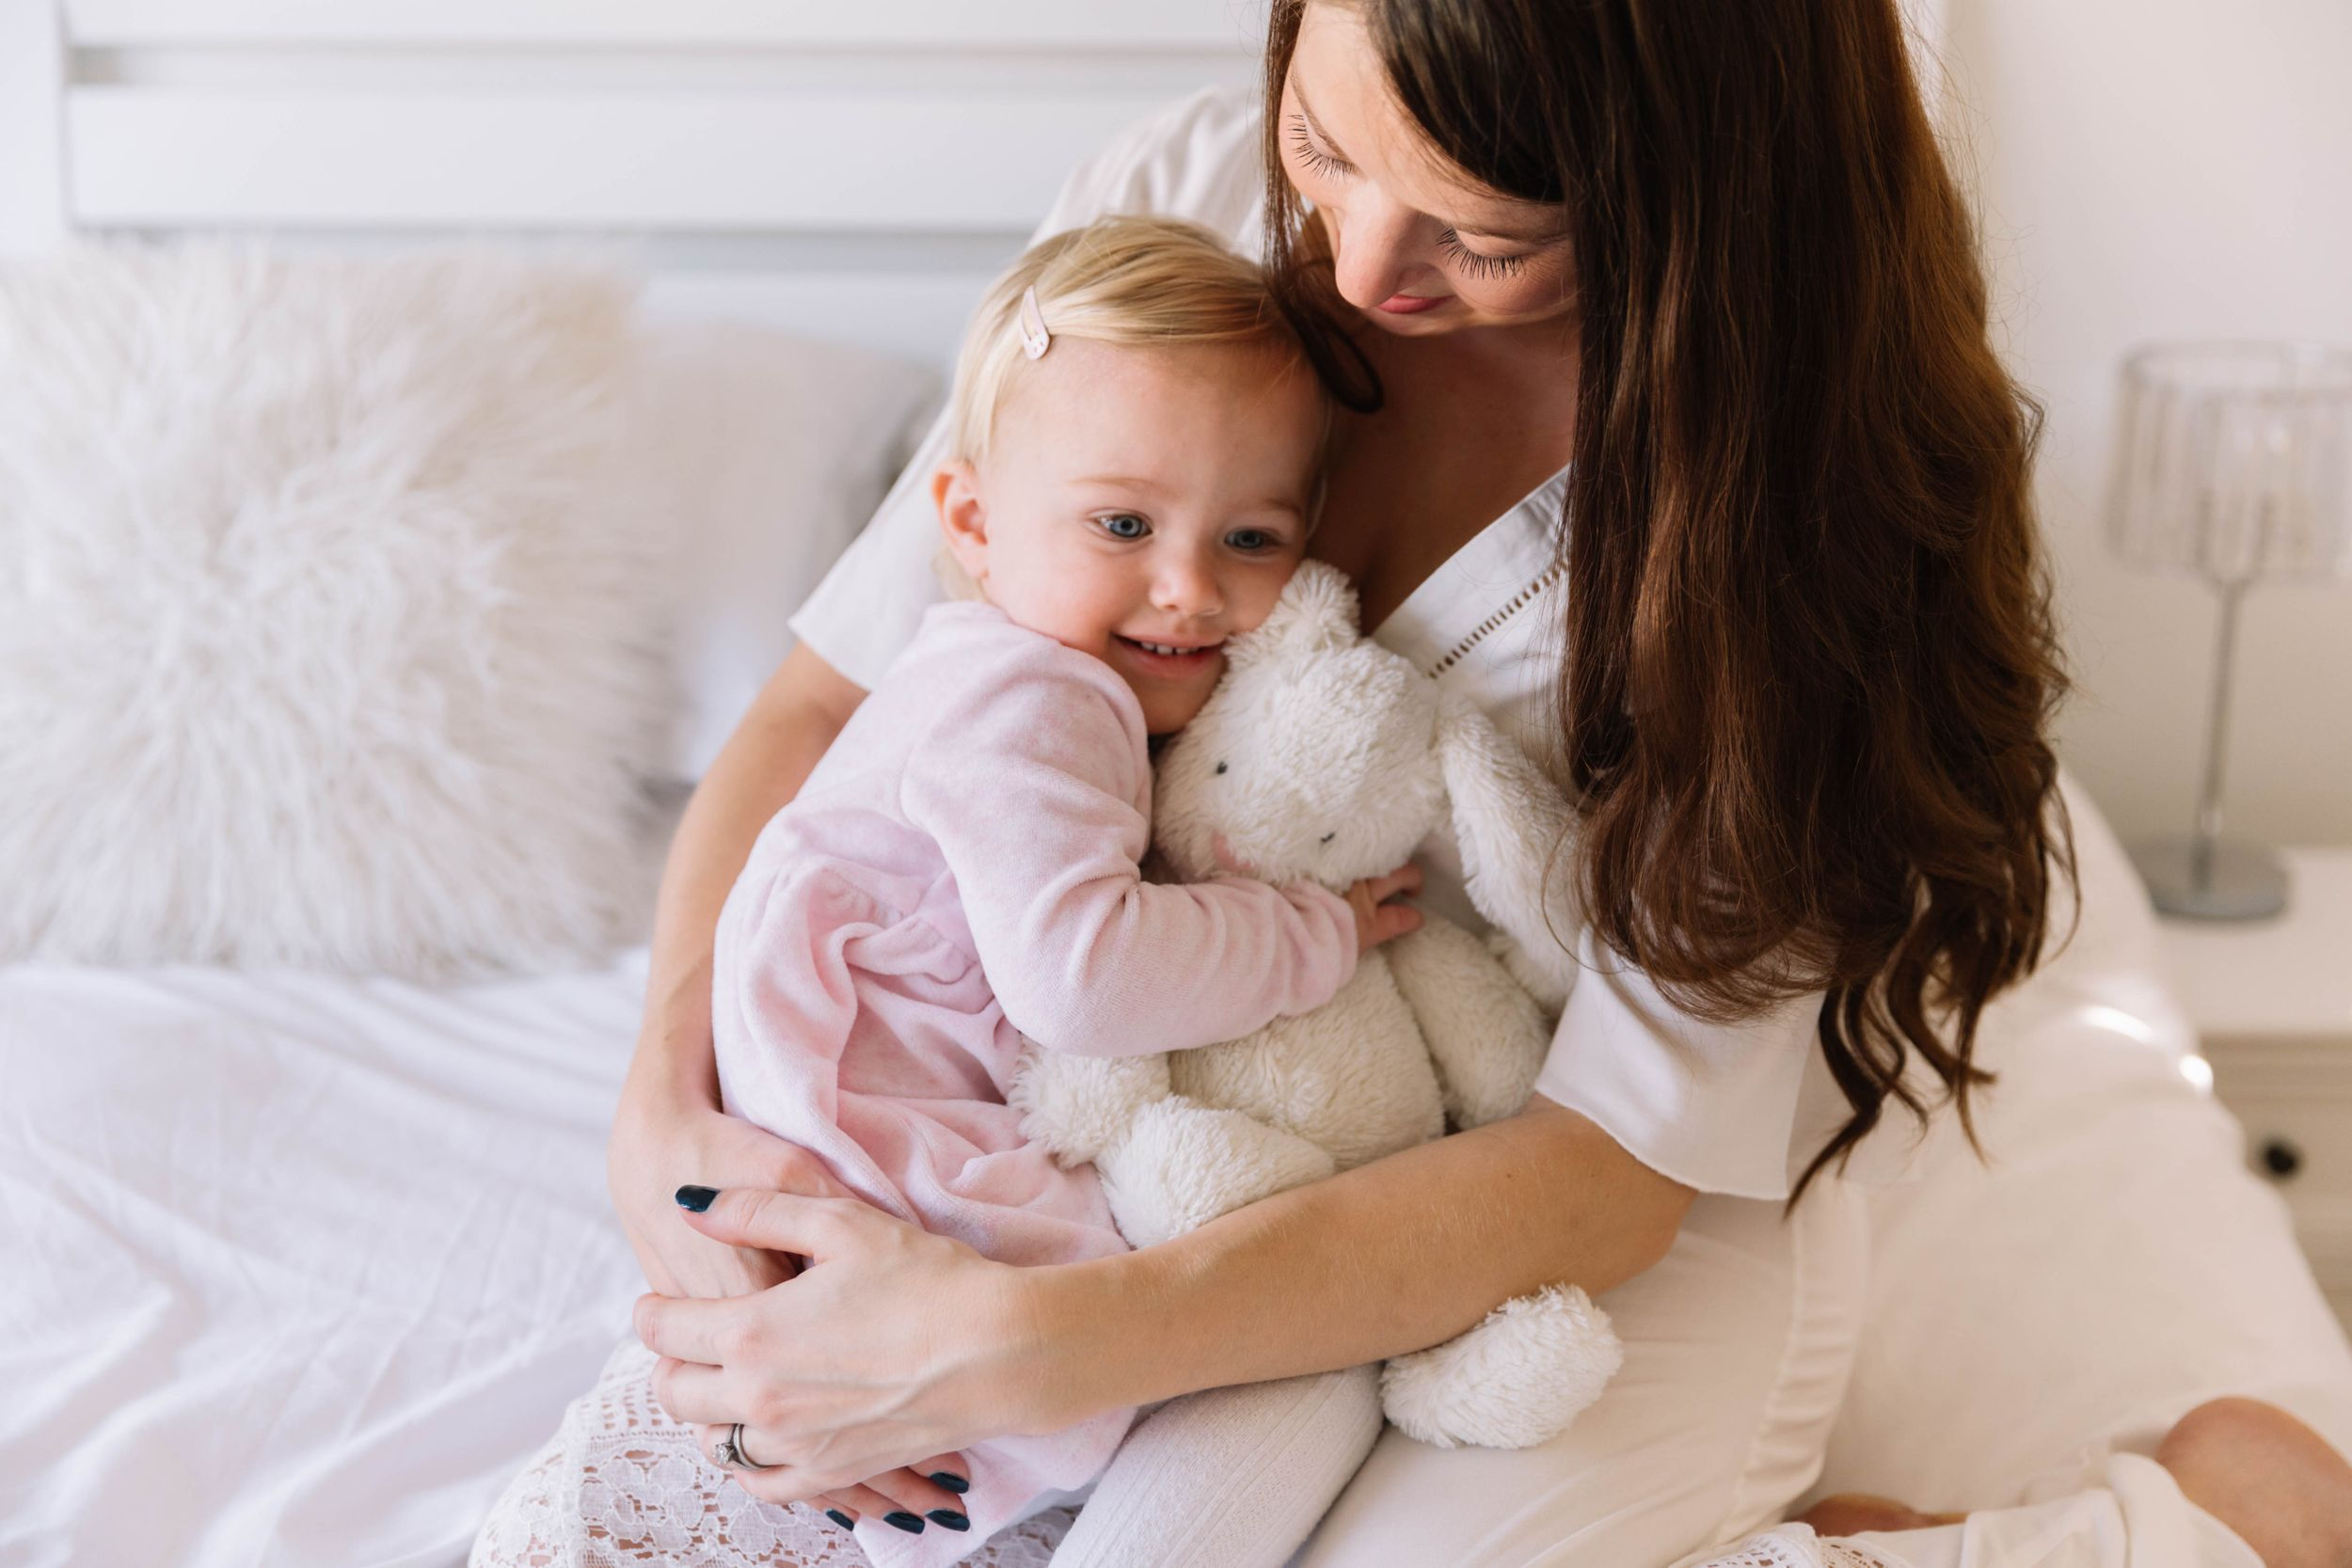 pregnant mum in white dress and toddler daughter in pink dress cuddling on bed